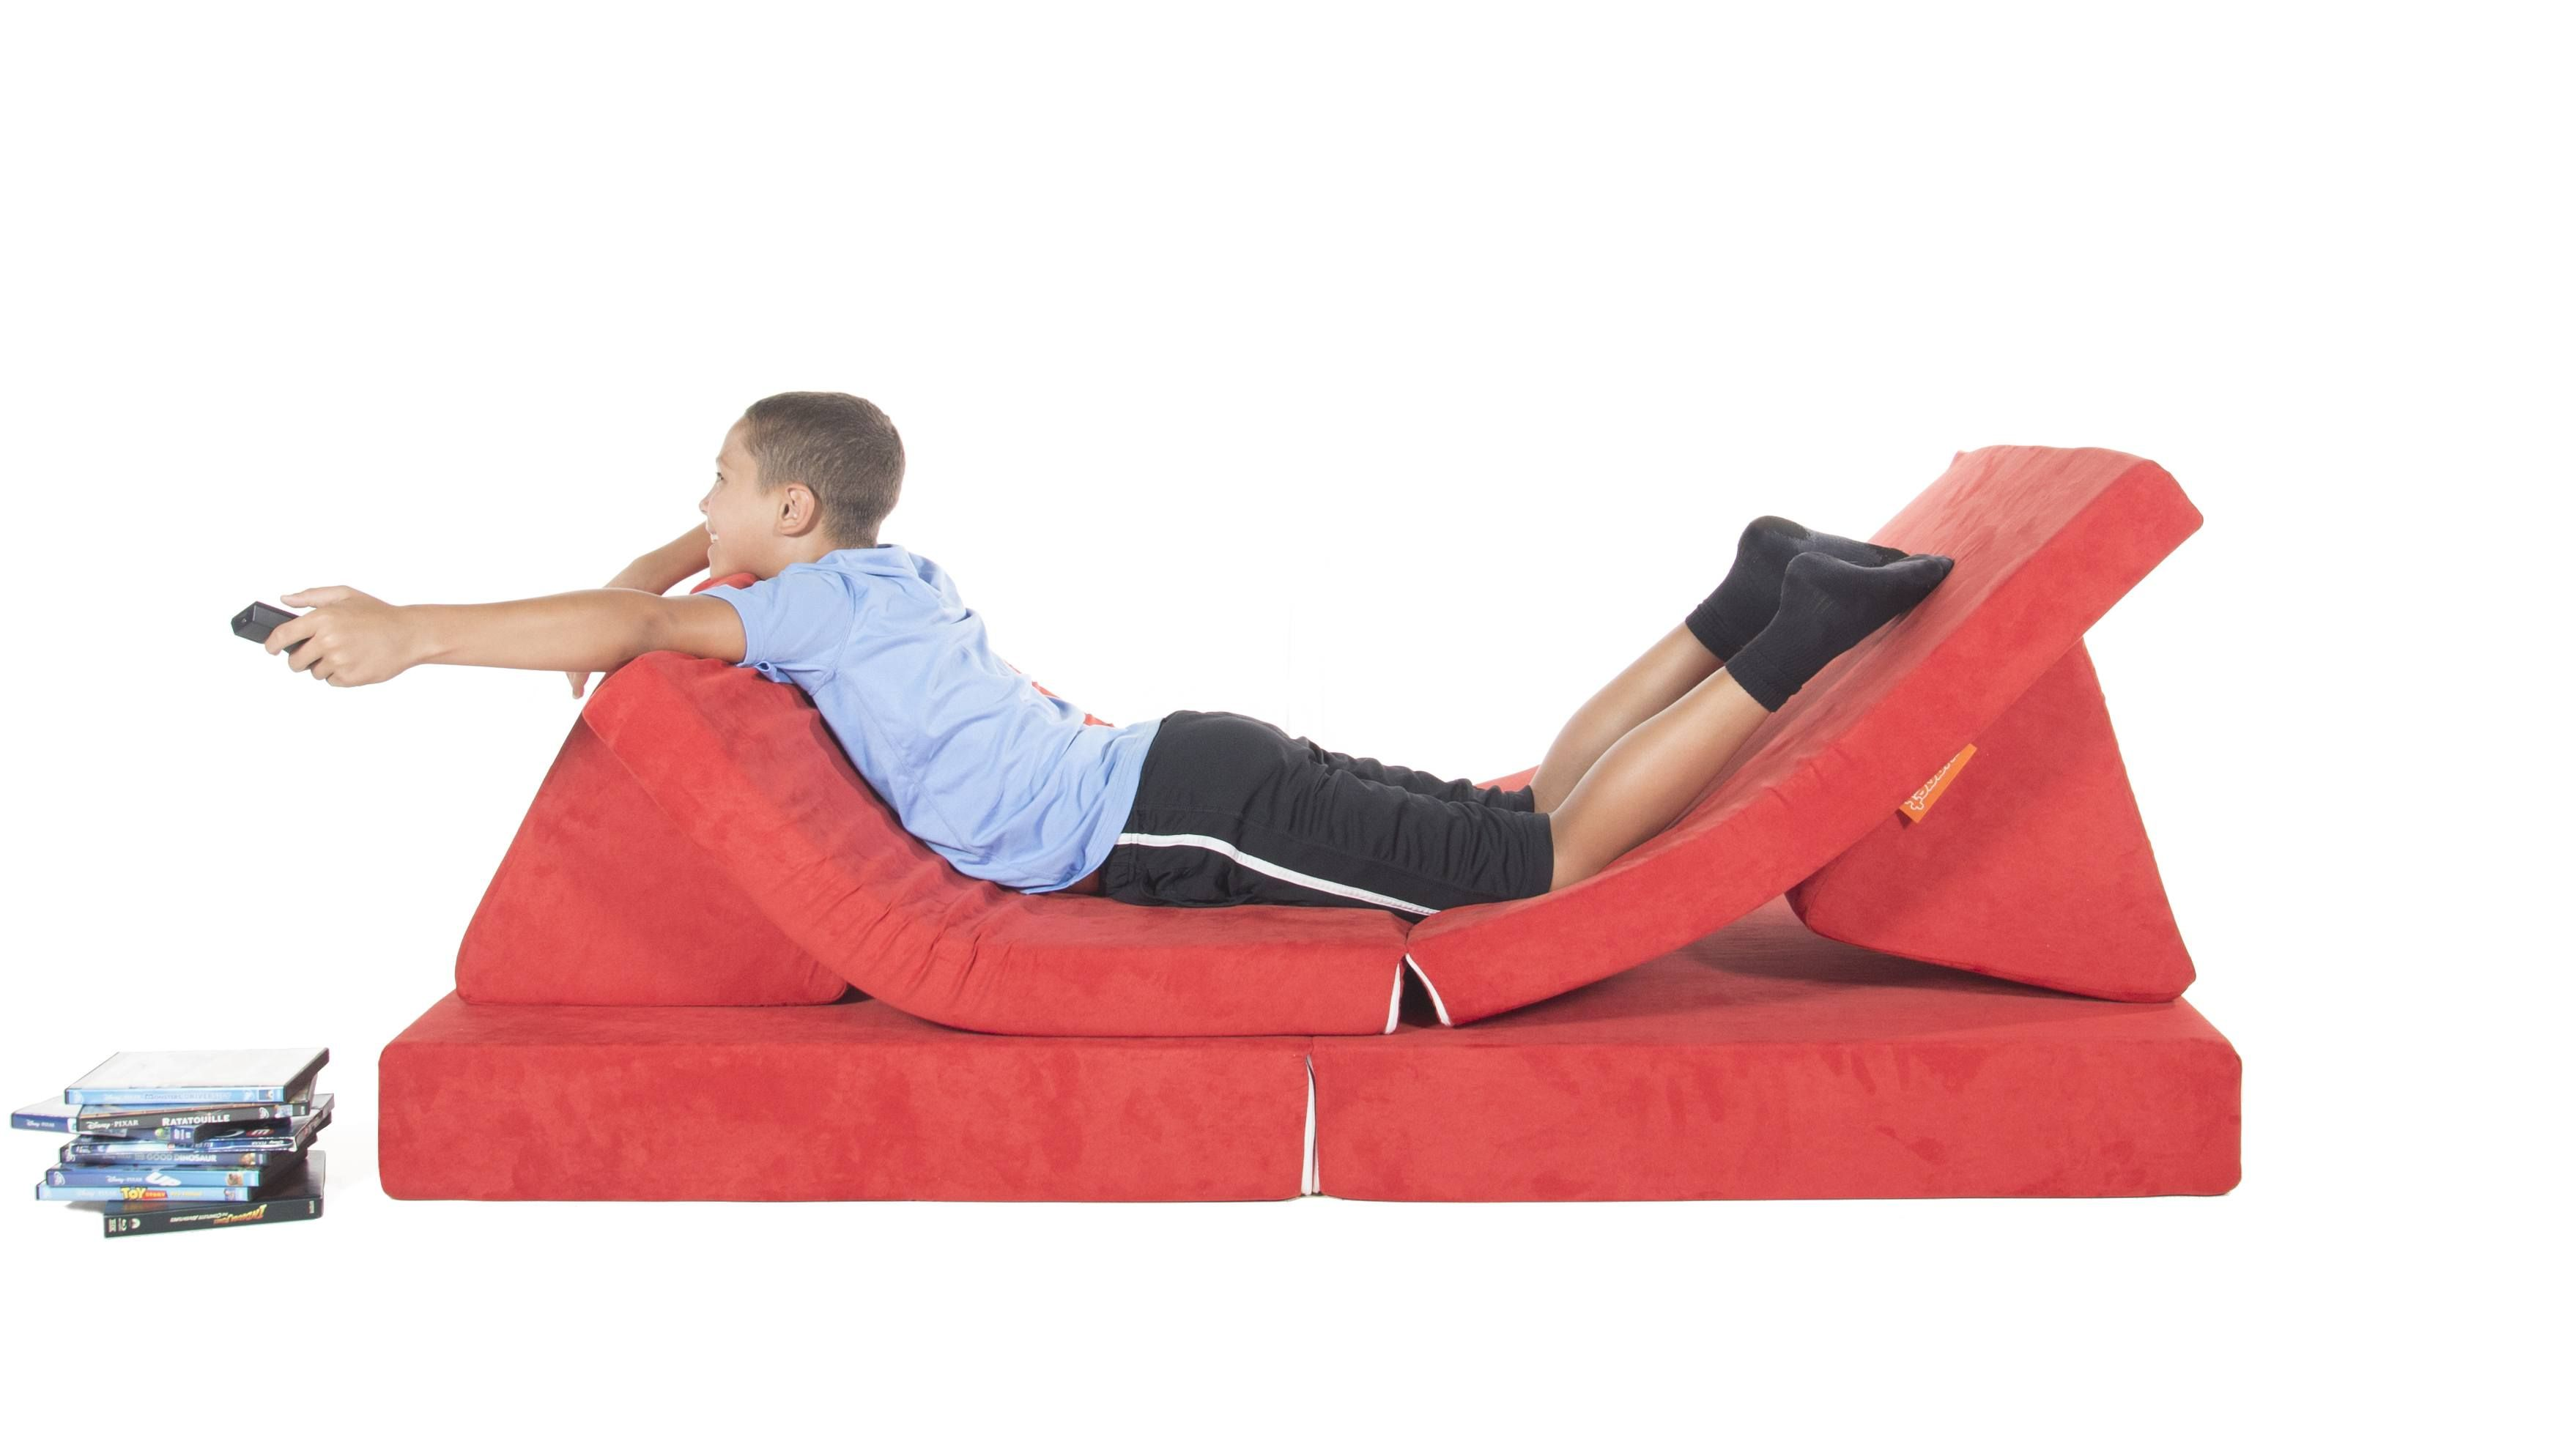 Nugget Couch   Kids couch, Sun lounger, Outdoor furniture